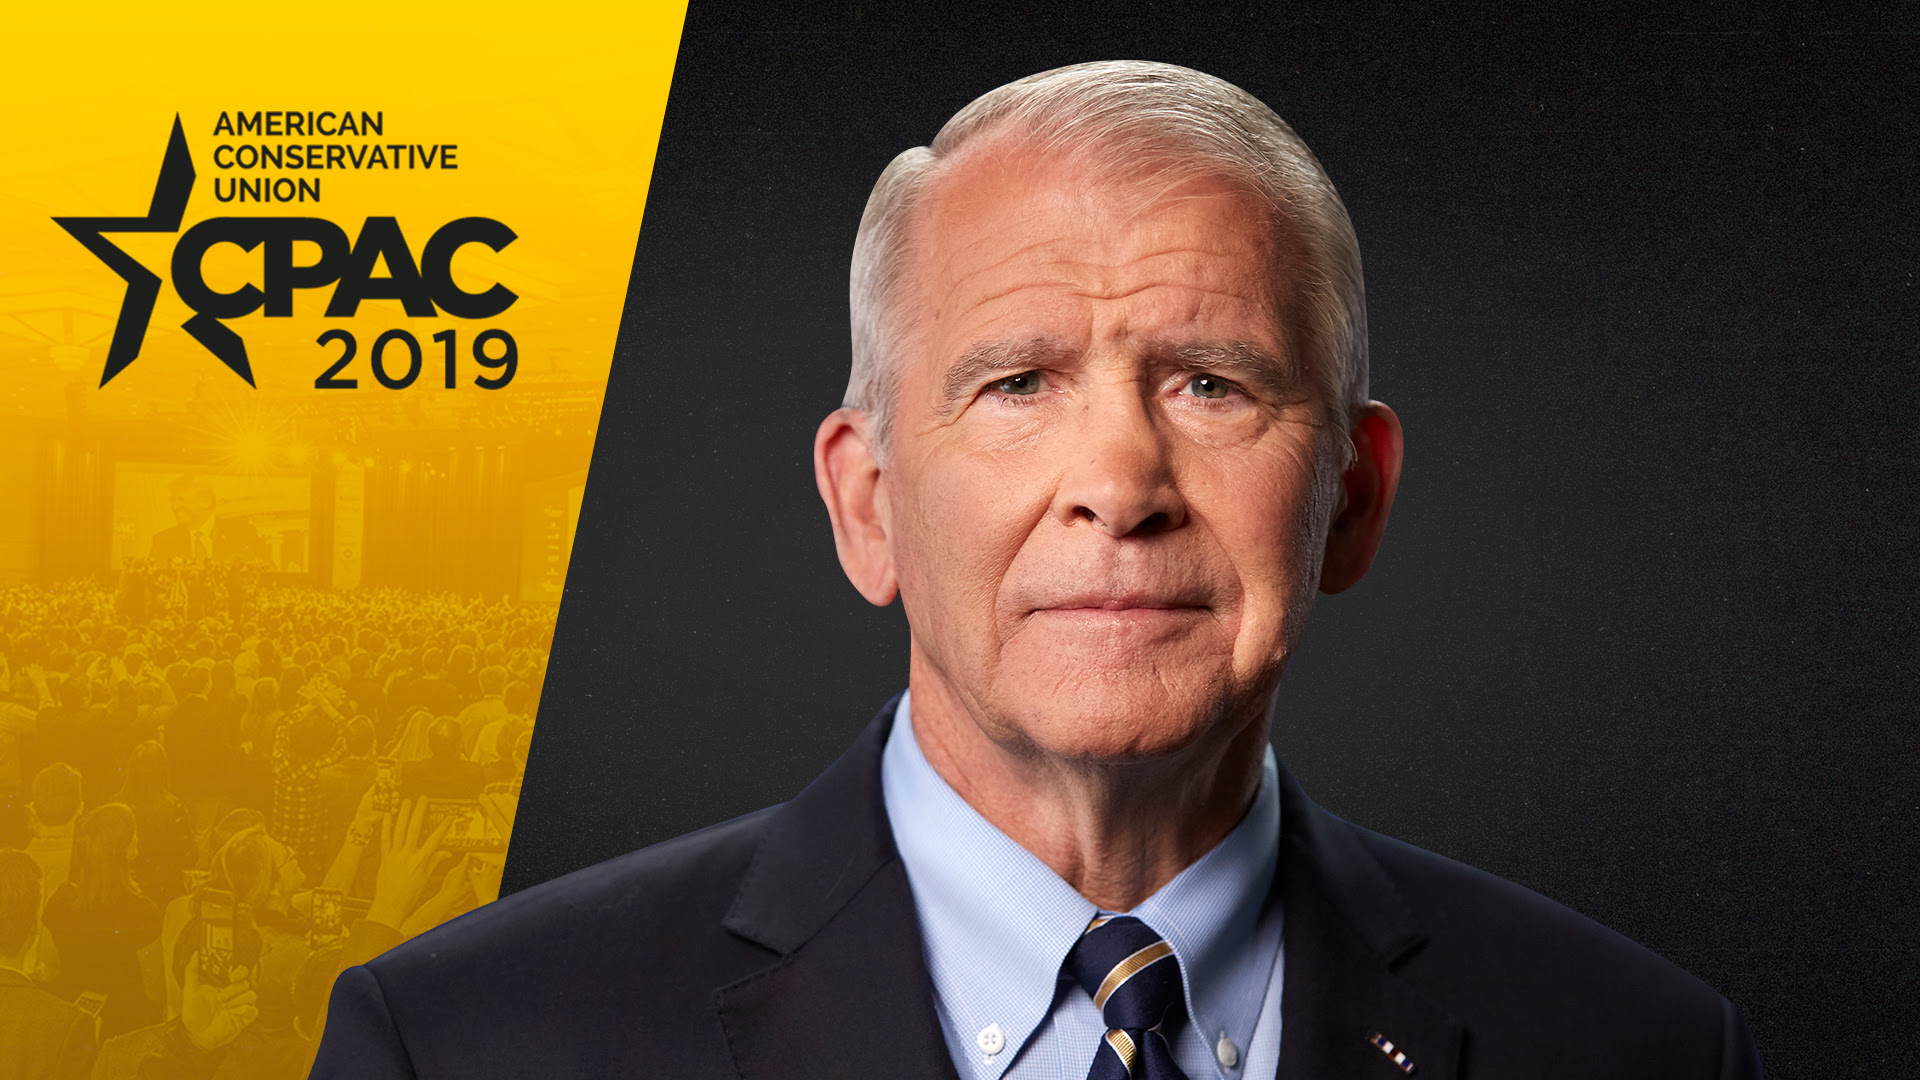 WATCH ▶ LtCol Oliver North's Speech at CPAC